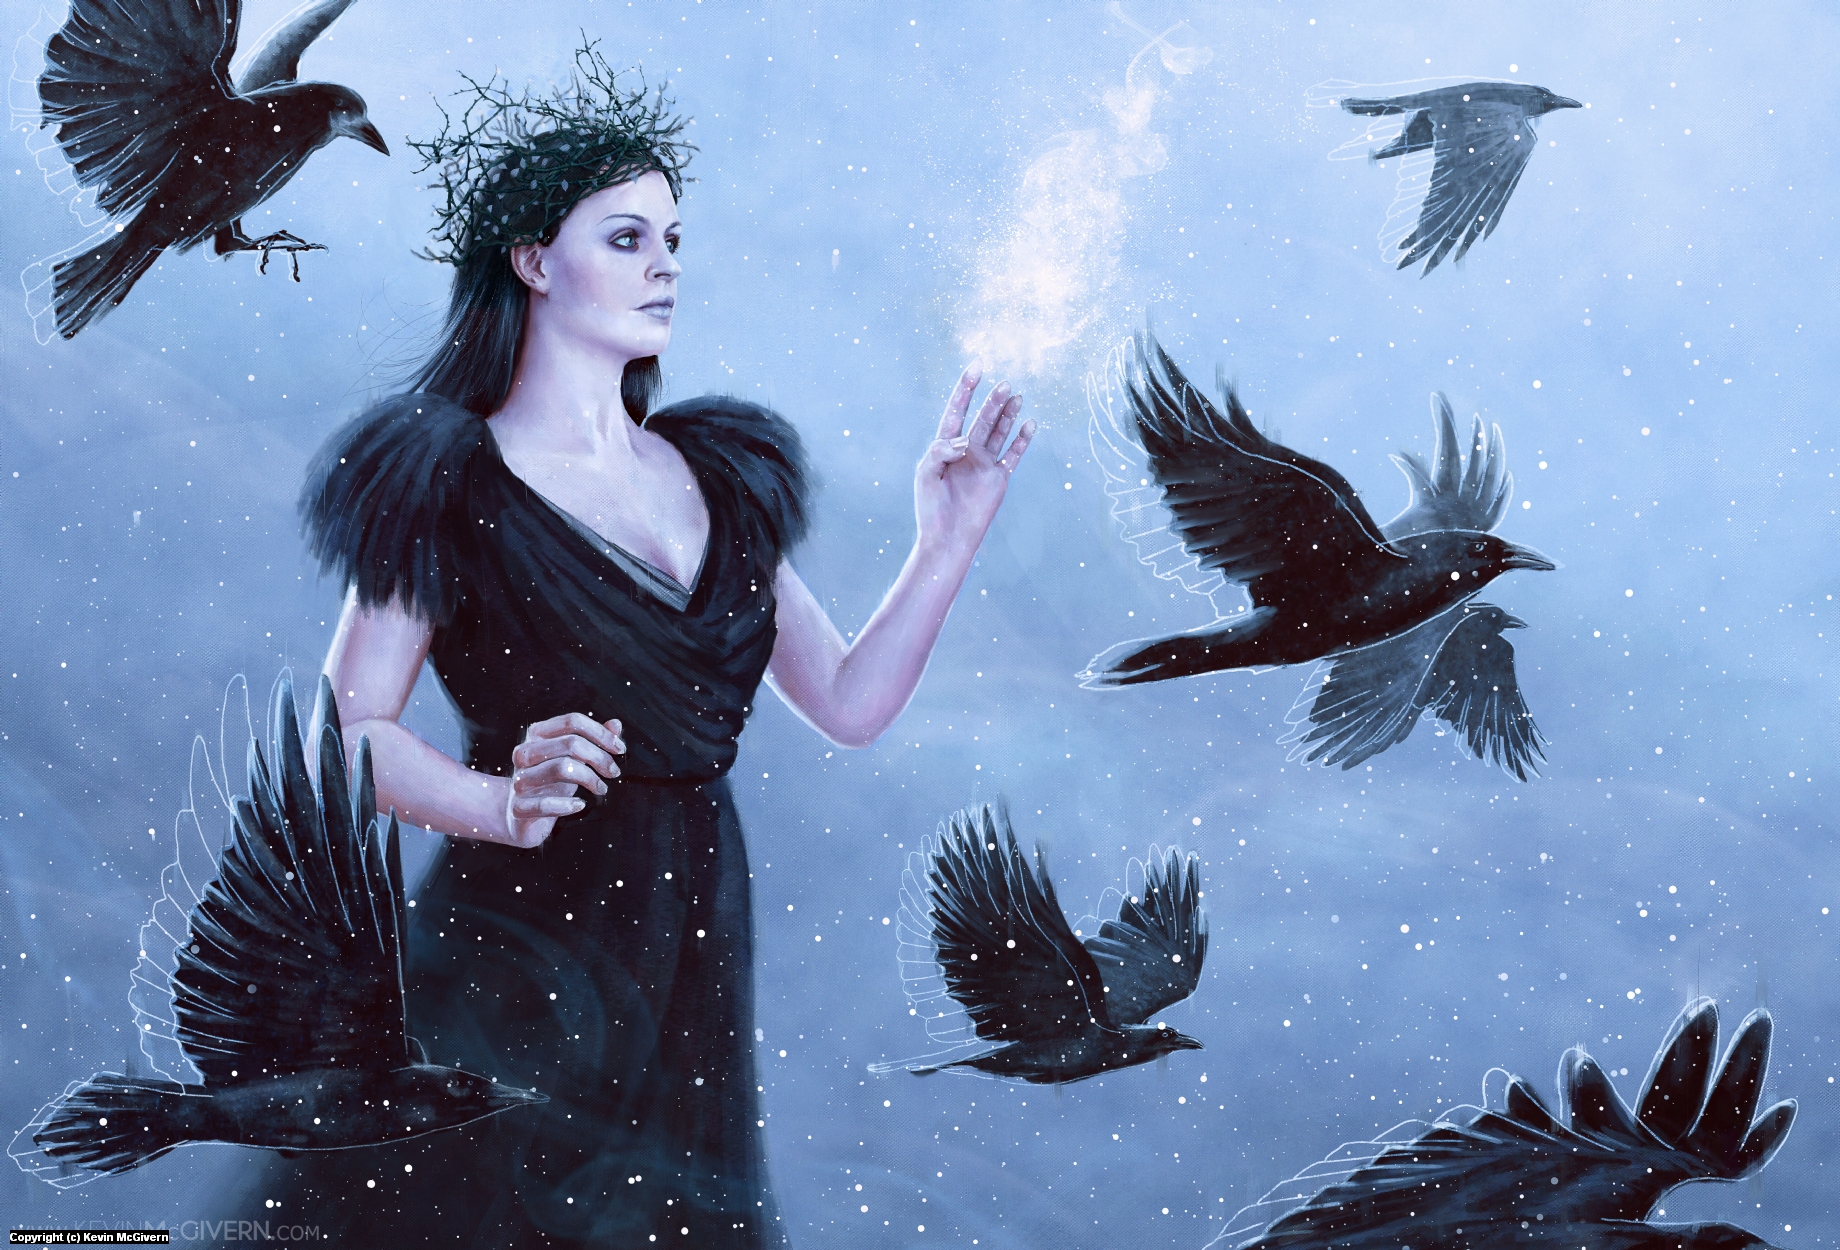 Raven Queen Artwork by Kevin McGivern